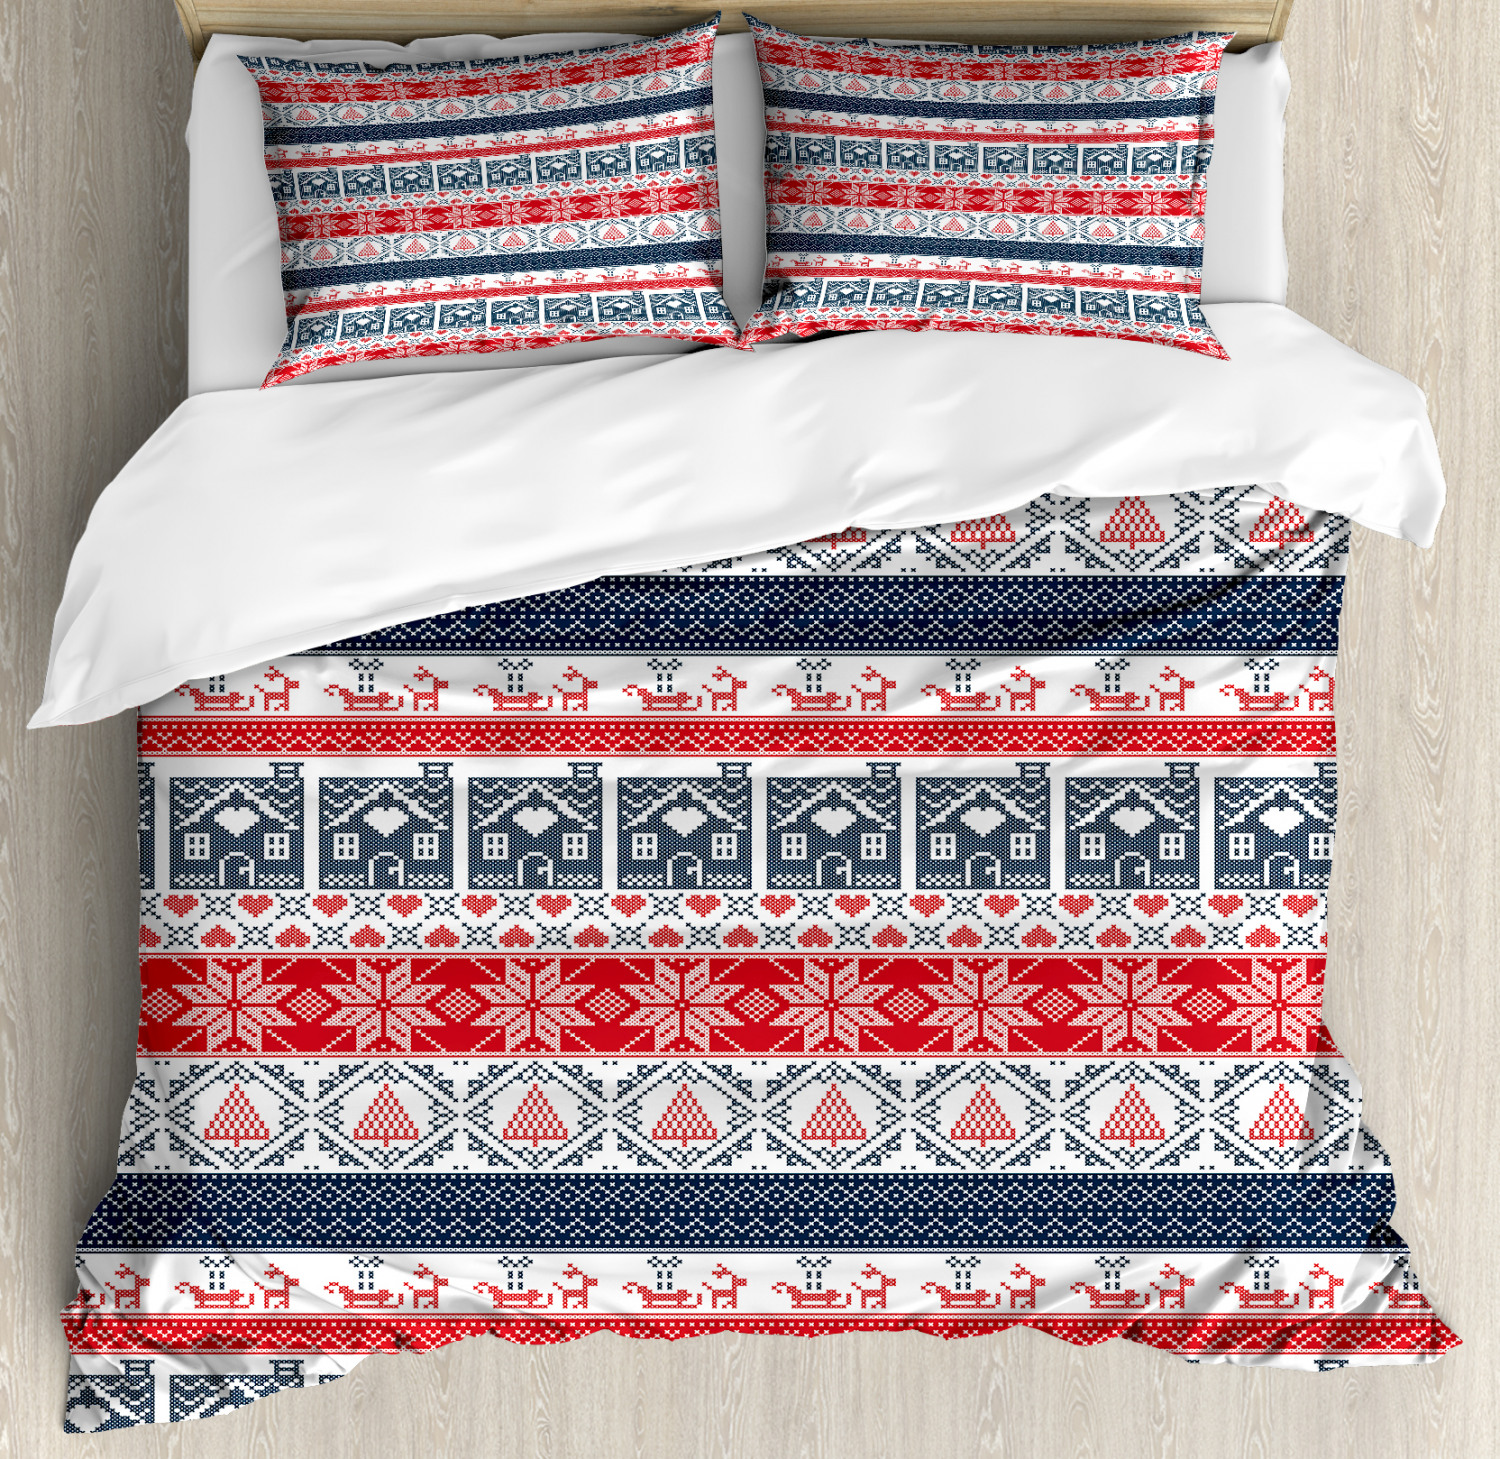 Nordic Duvet Cover Set with Pillow Shams Scandinavian Stitch